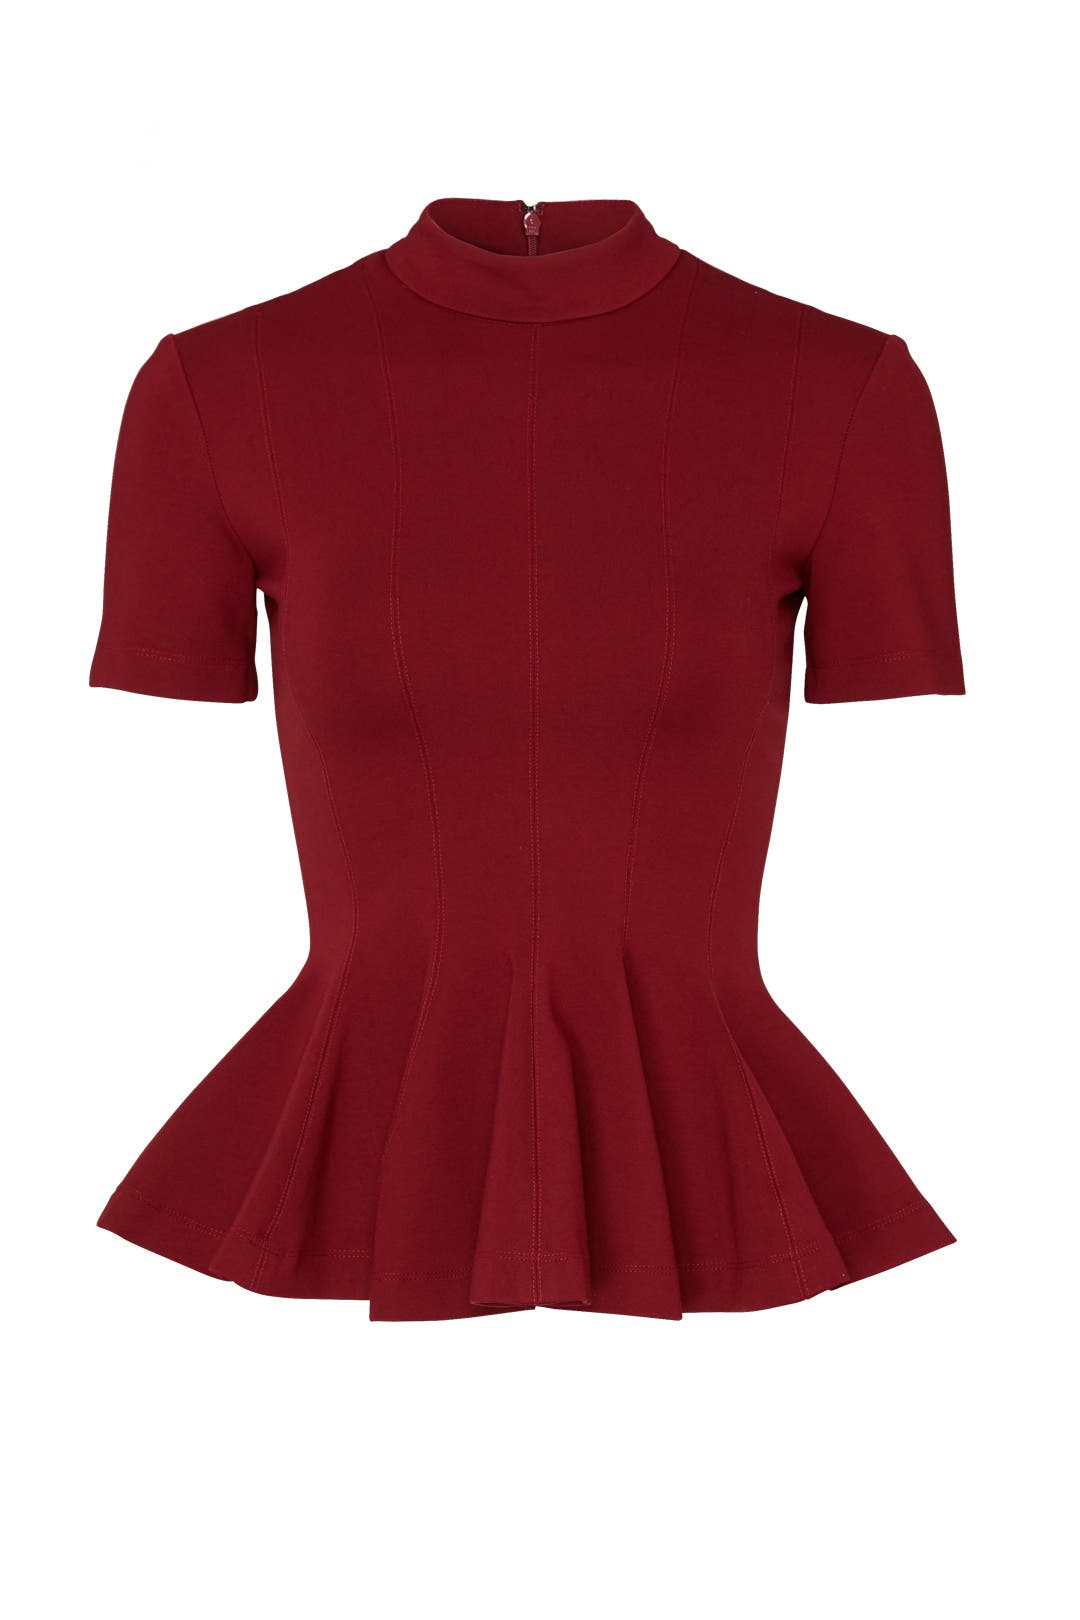 Tome Ponte For60Rent The By Burgundy Top Runway FT1JcKl3u